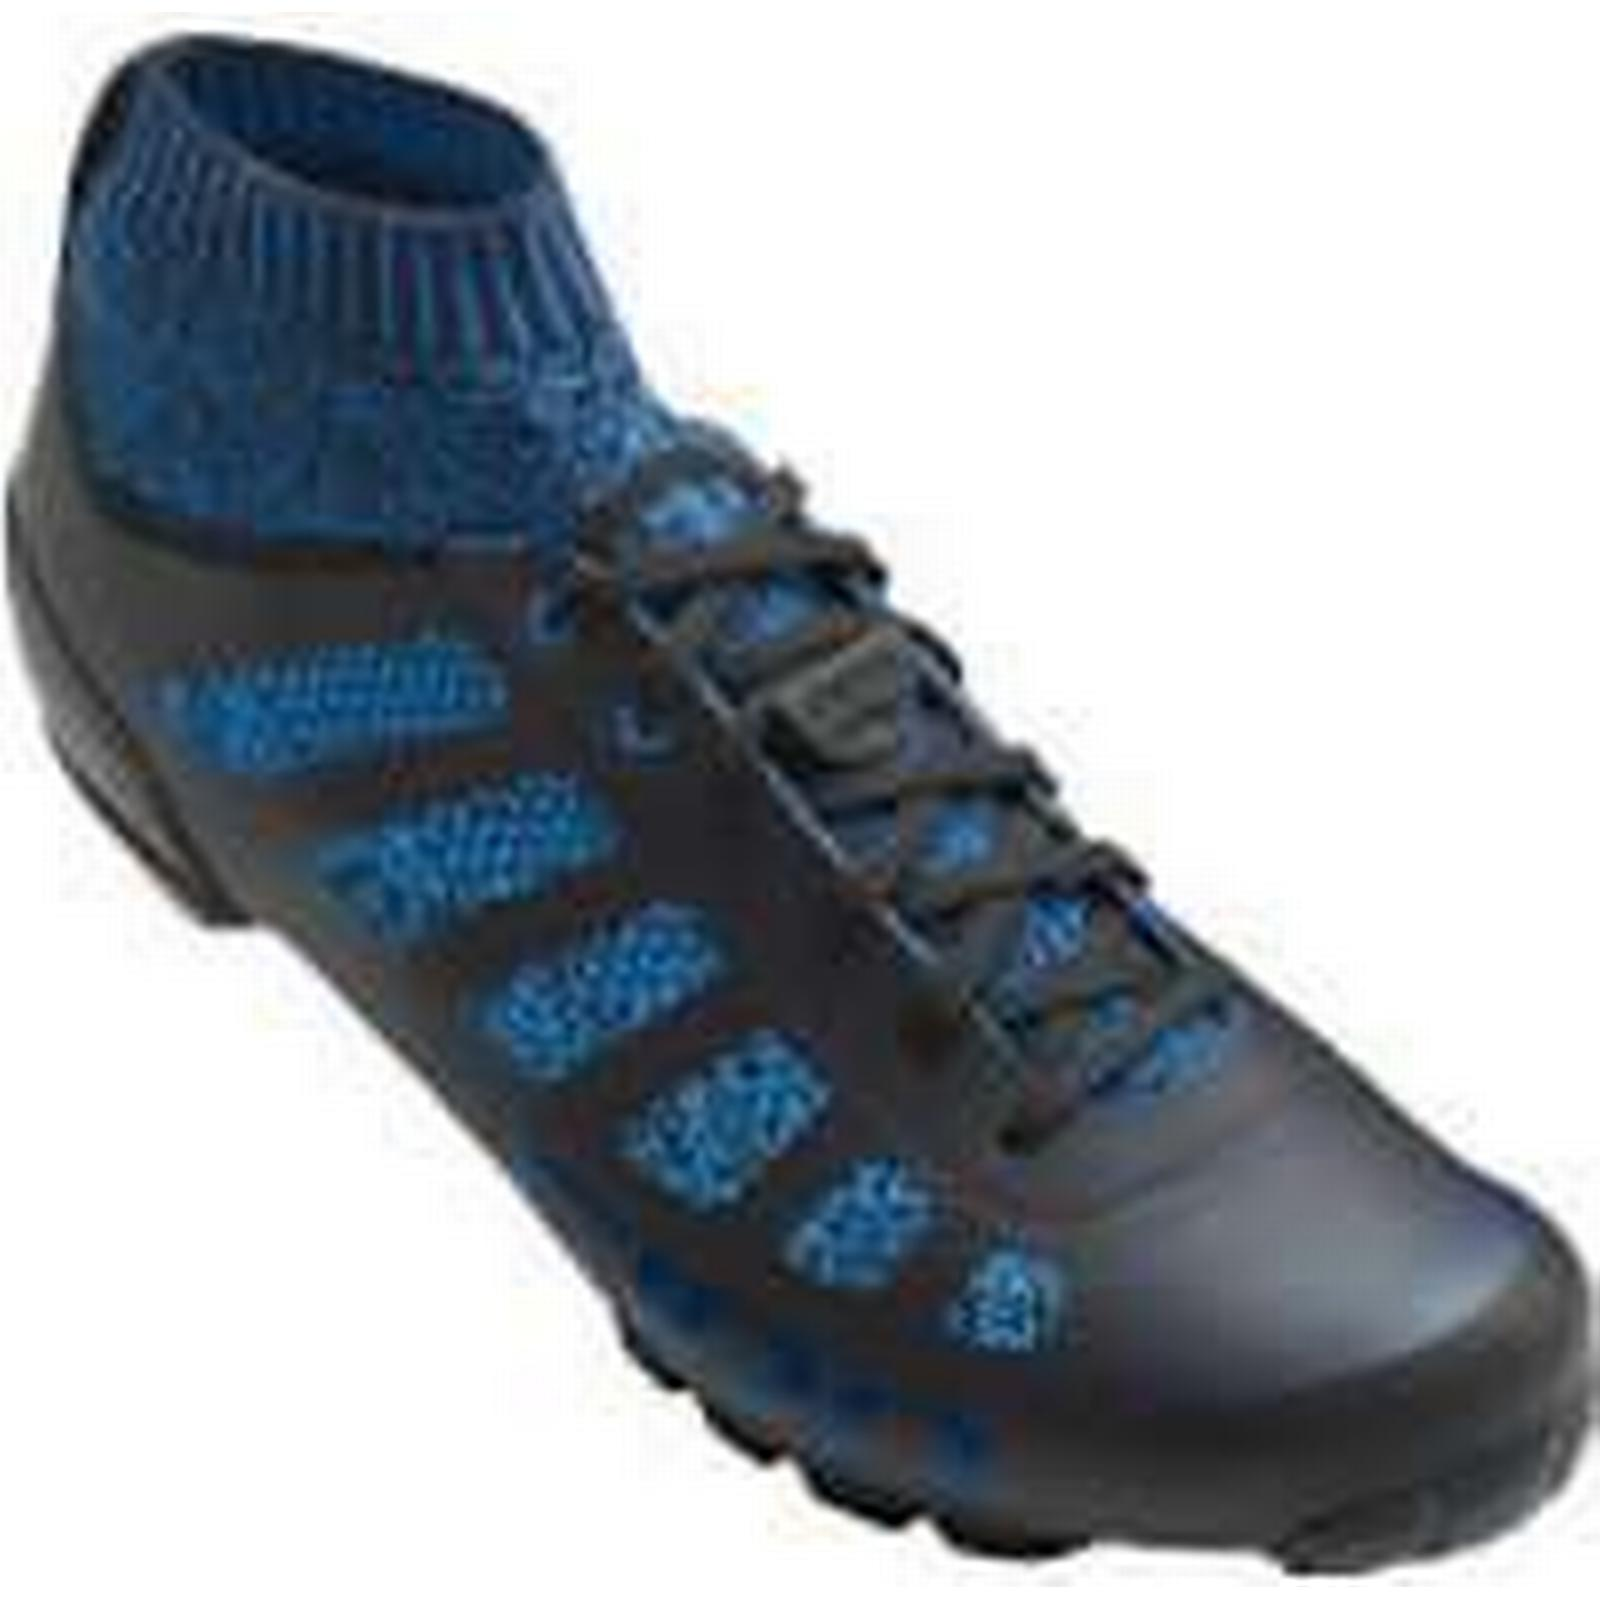 Giro Empire VR70 MTB Cycling Shoes 46/UK - Midnight/Blue - EU 46/UK Shoes 11 - Blue ef57e3